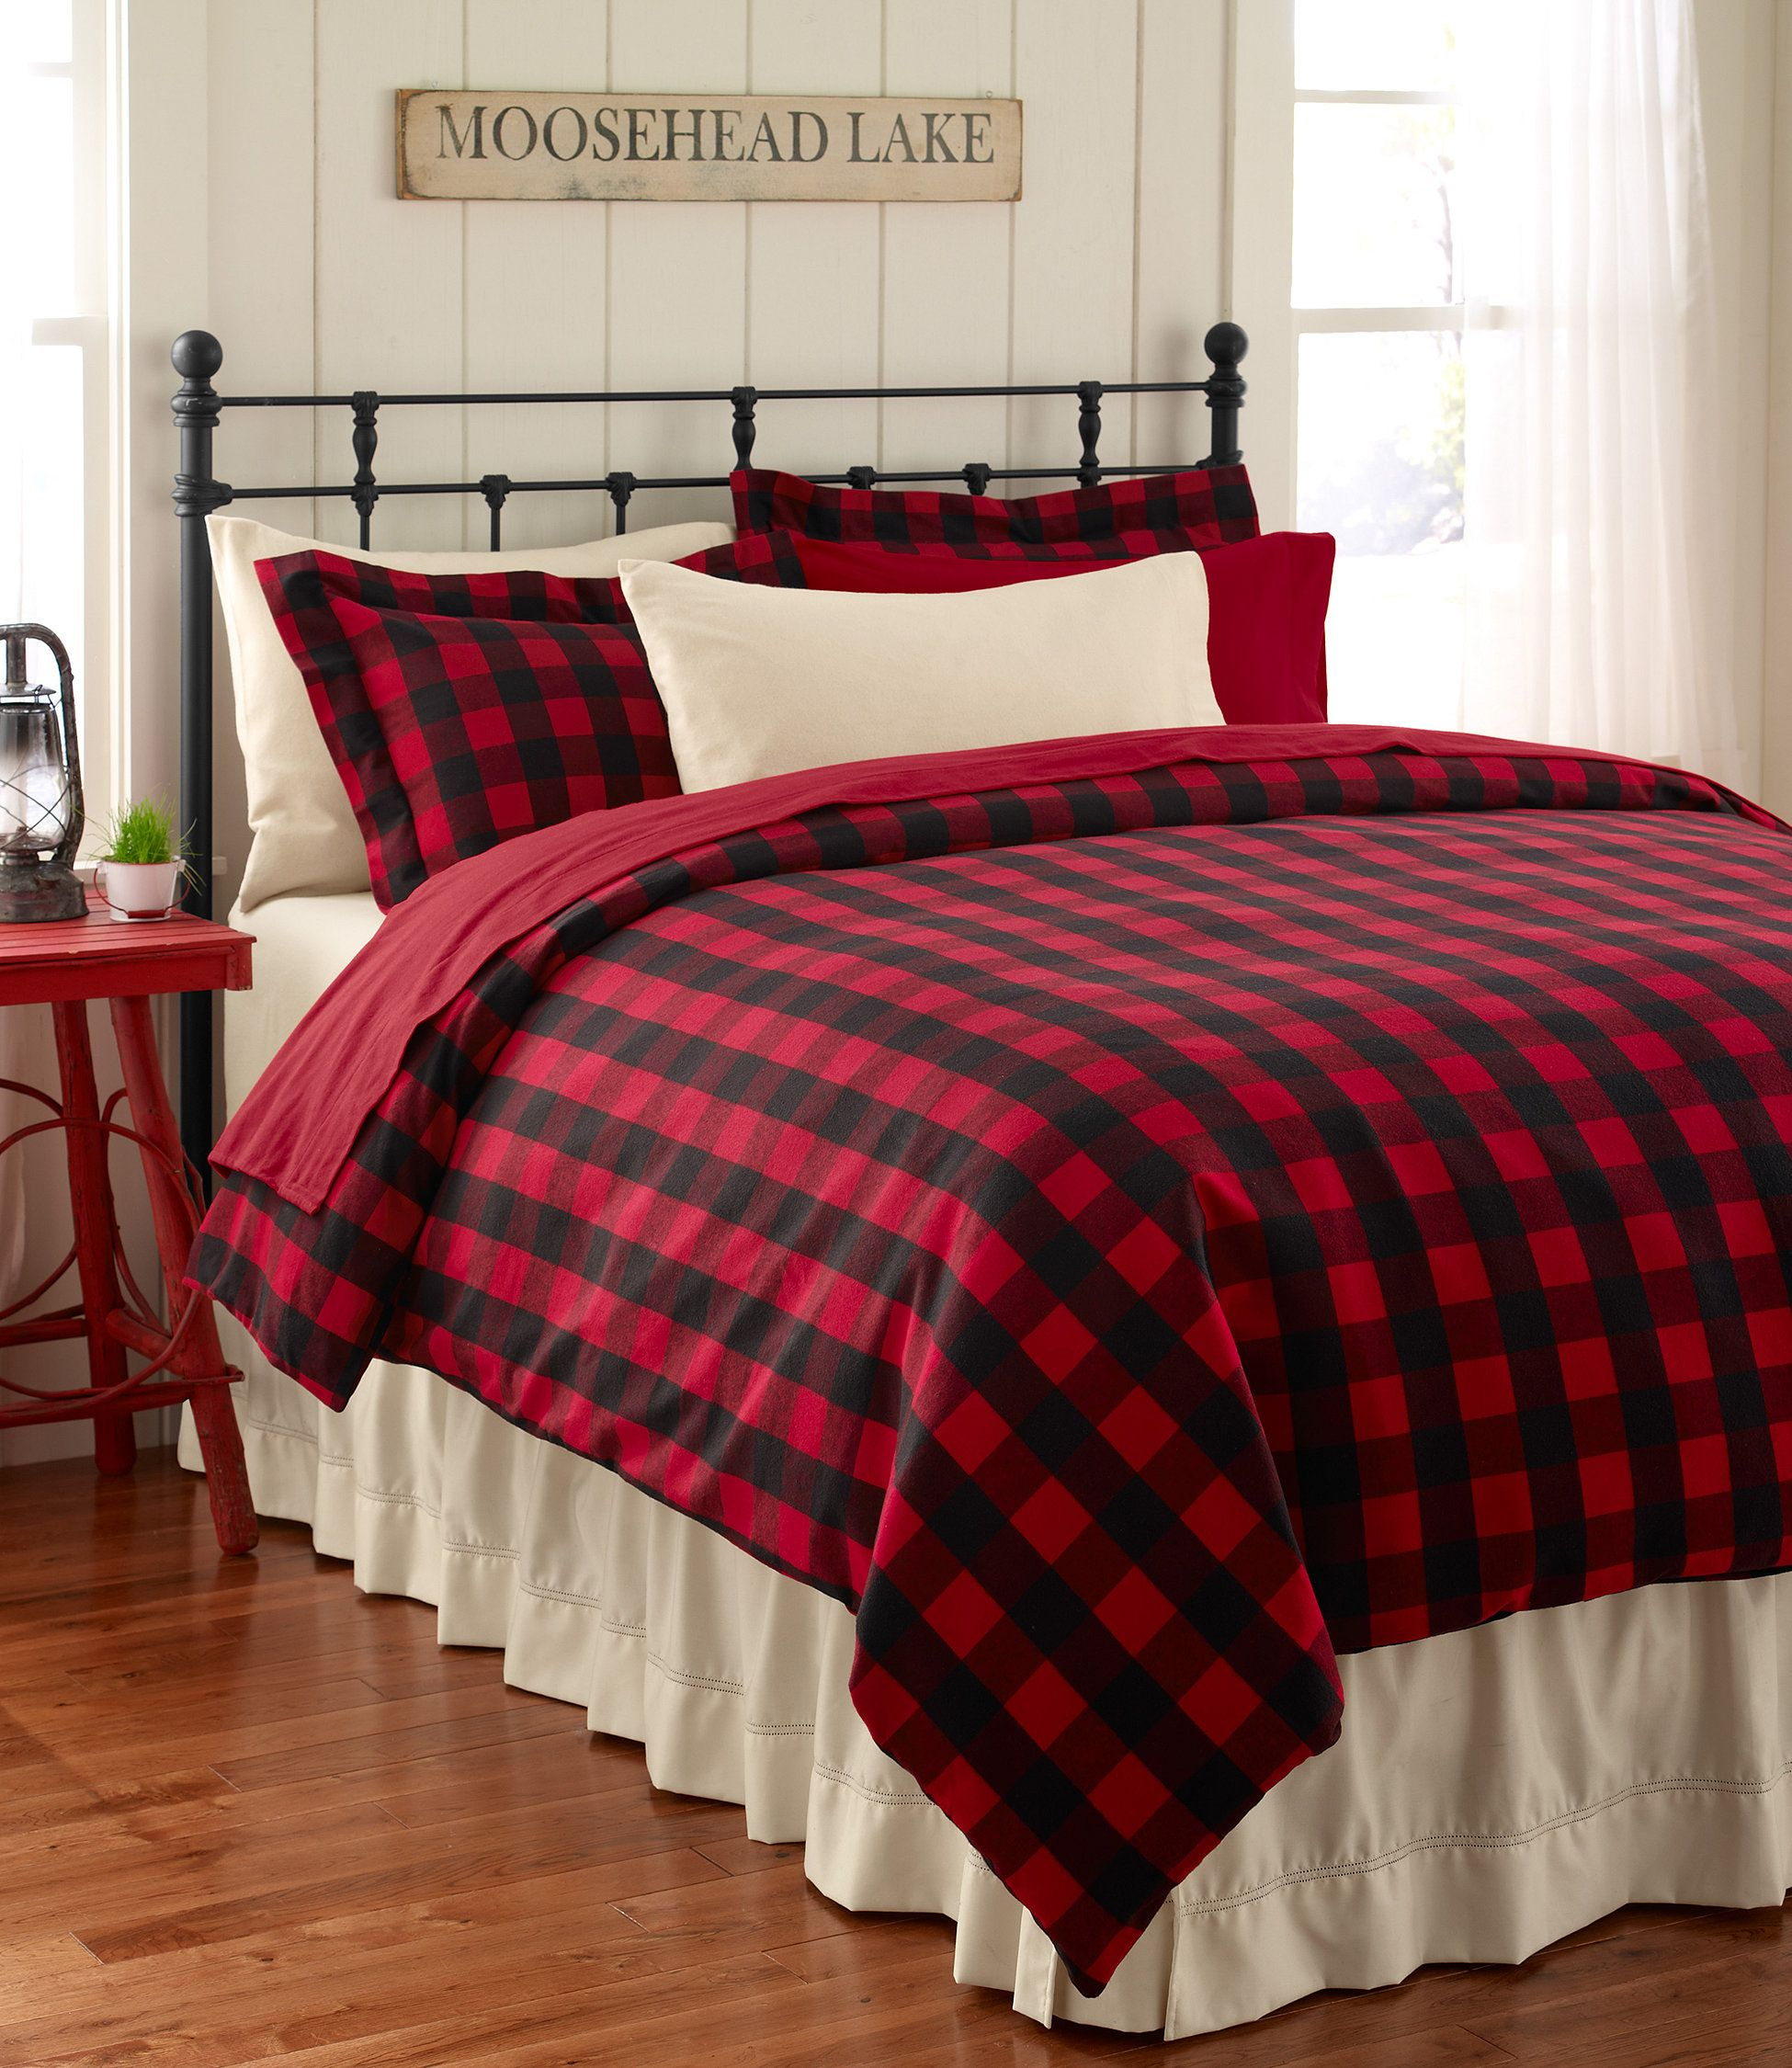 Ultrasoft Flannel Comforter Cover Buffalo Plaid Bedding Free